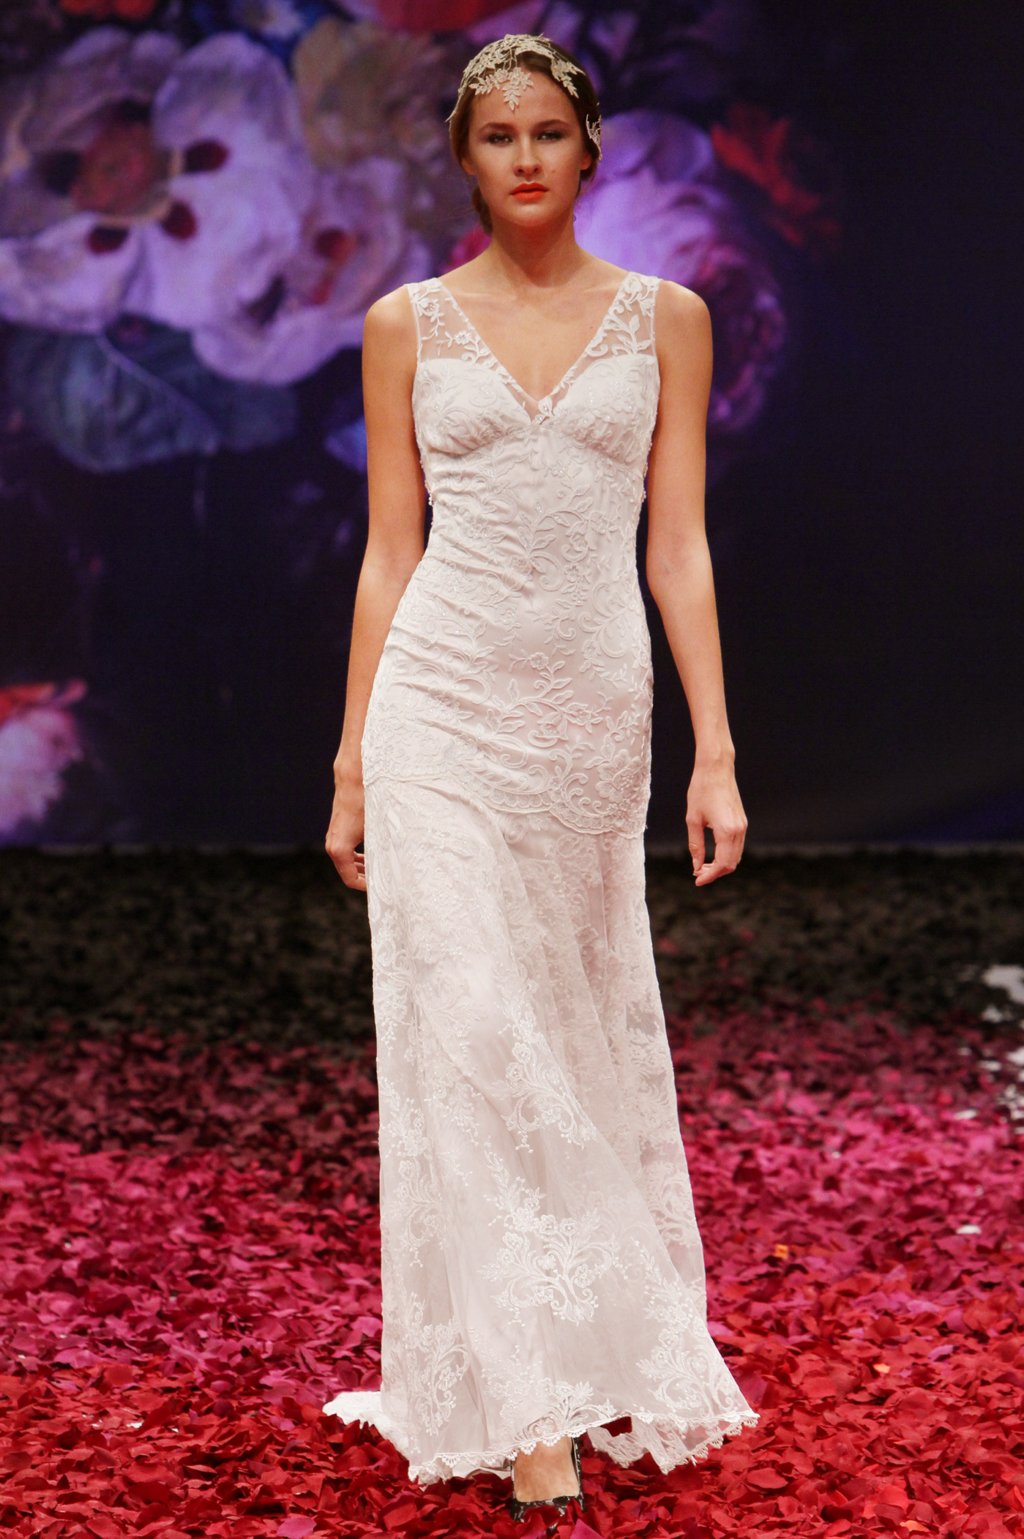 Iris wedding dress by Claire Pettibone 2014 Still Life bridal collection